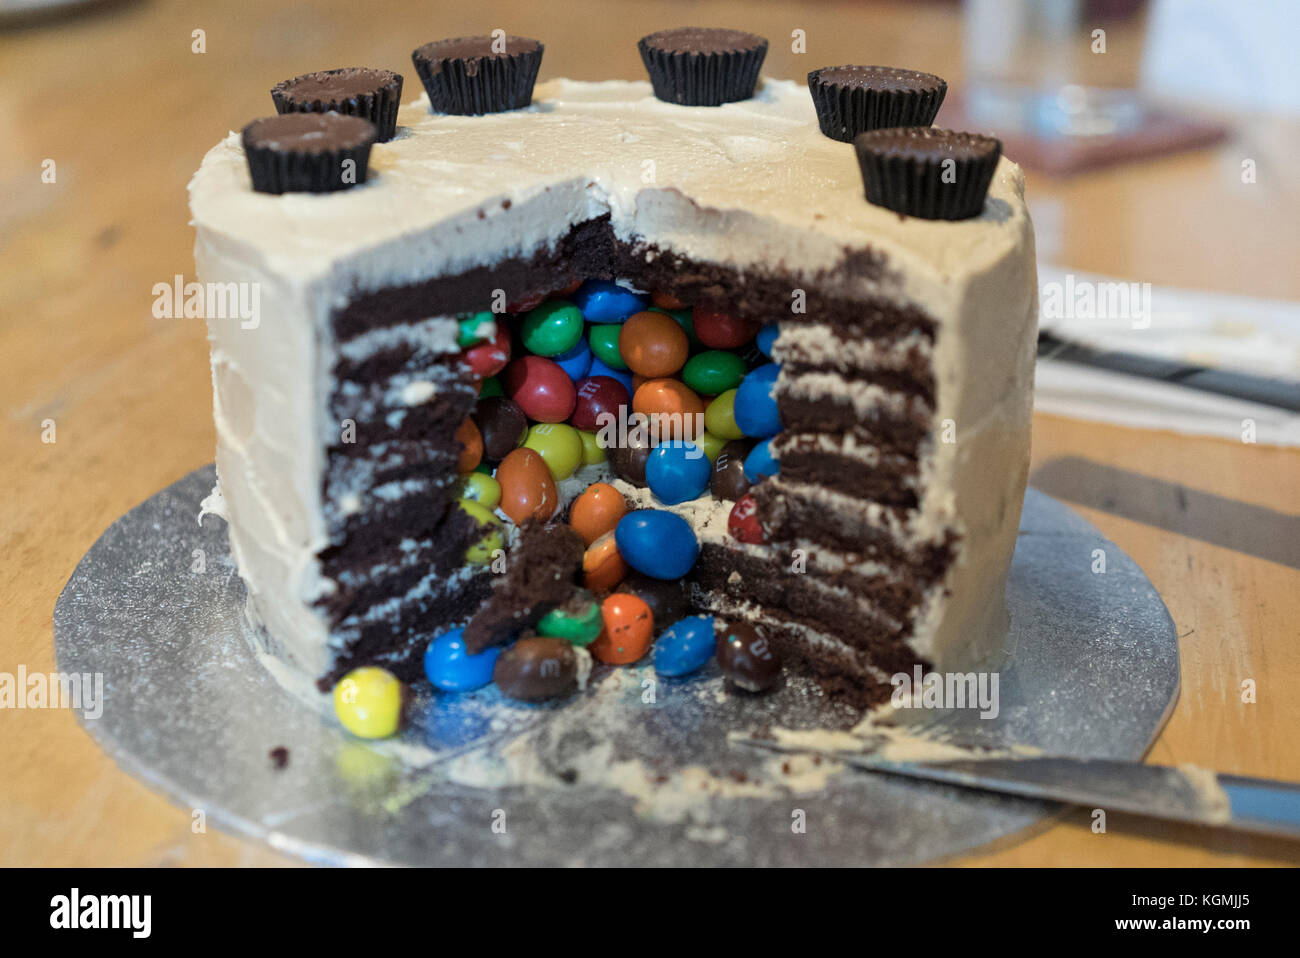 Ornate fancy birthday cake comprising chocolate sponge with peanut icing and enclosing peanut M&M candies inside - Stock Image